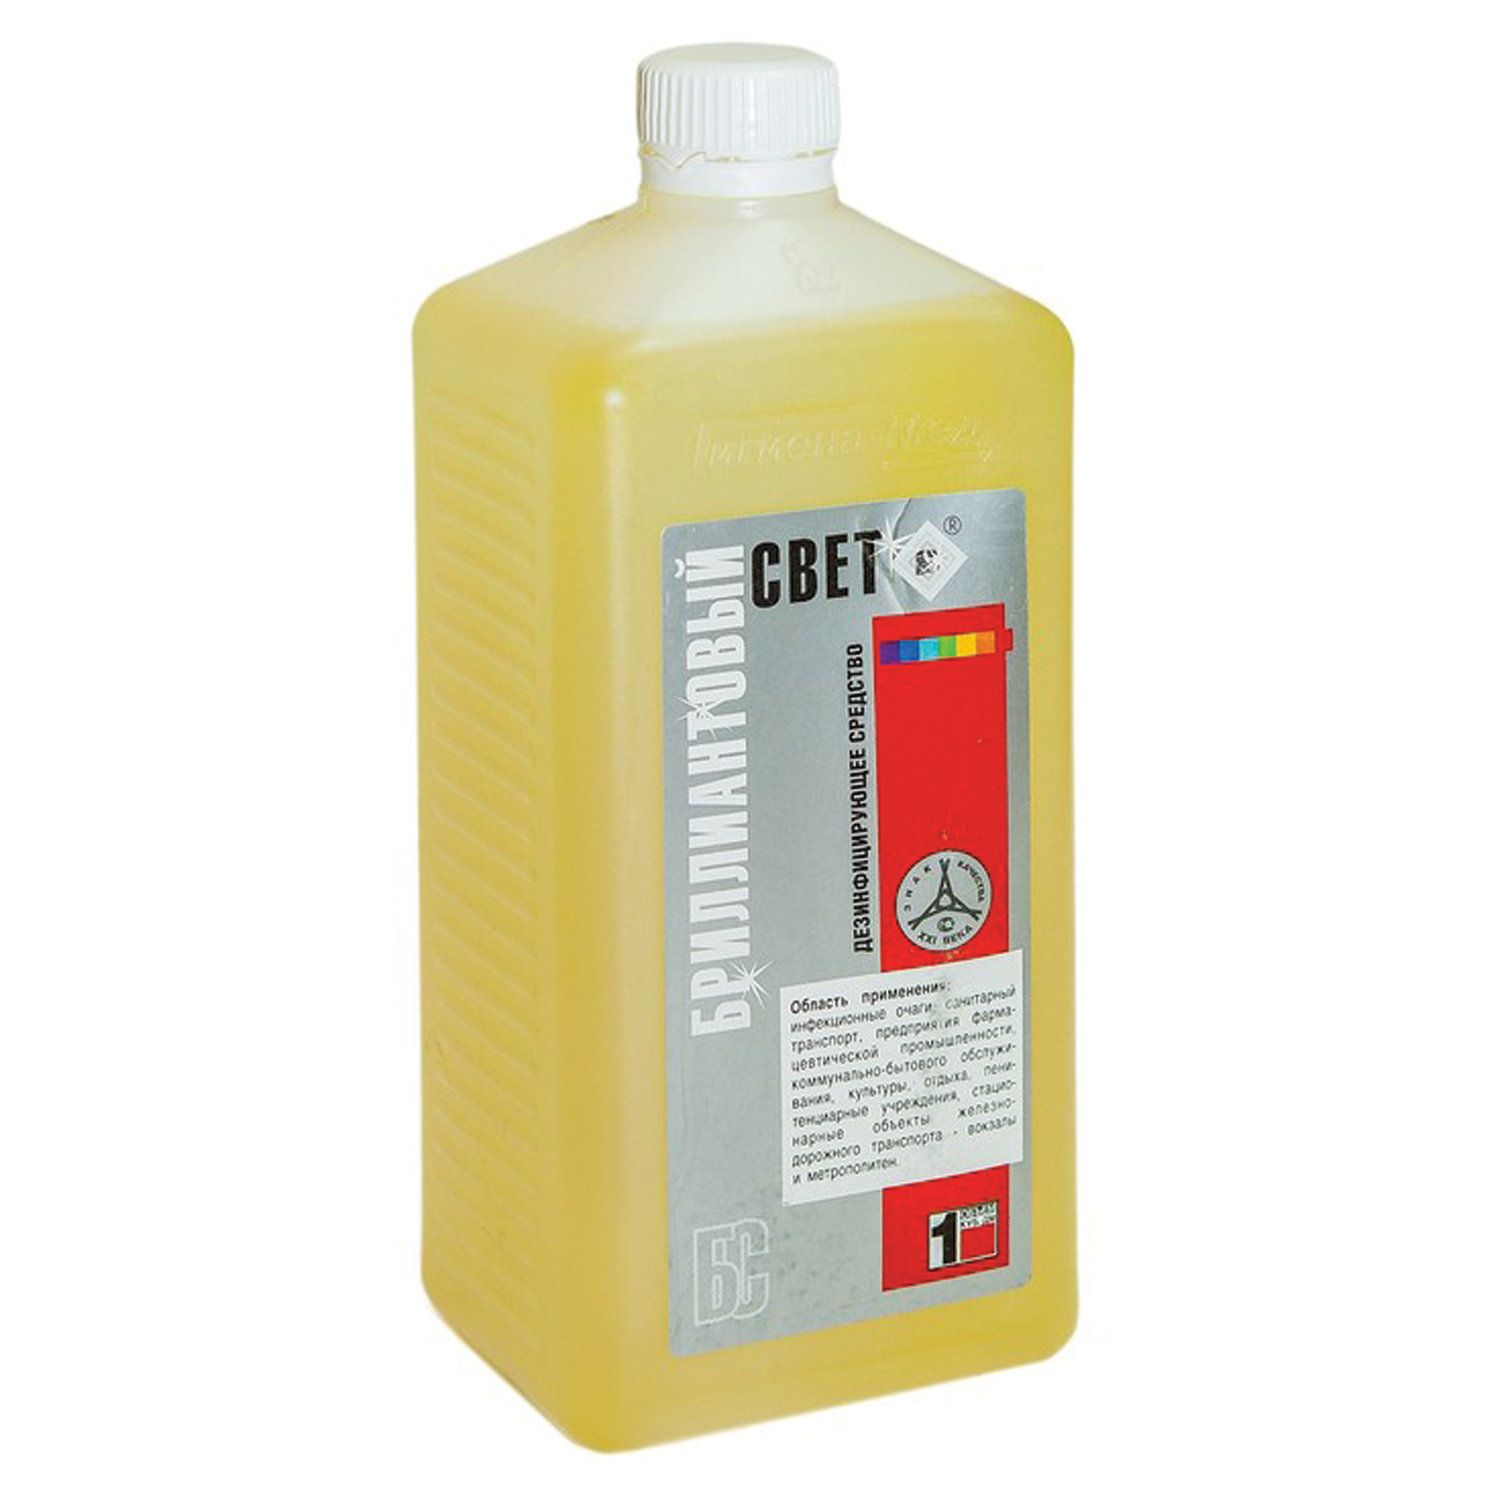 BRILLIANT / Disinfectant BRILLIANT LIGHT 1 l, concentrate